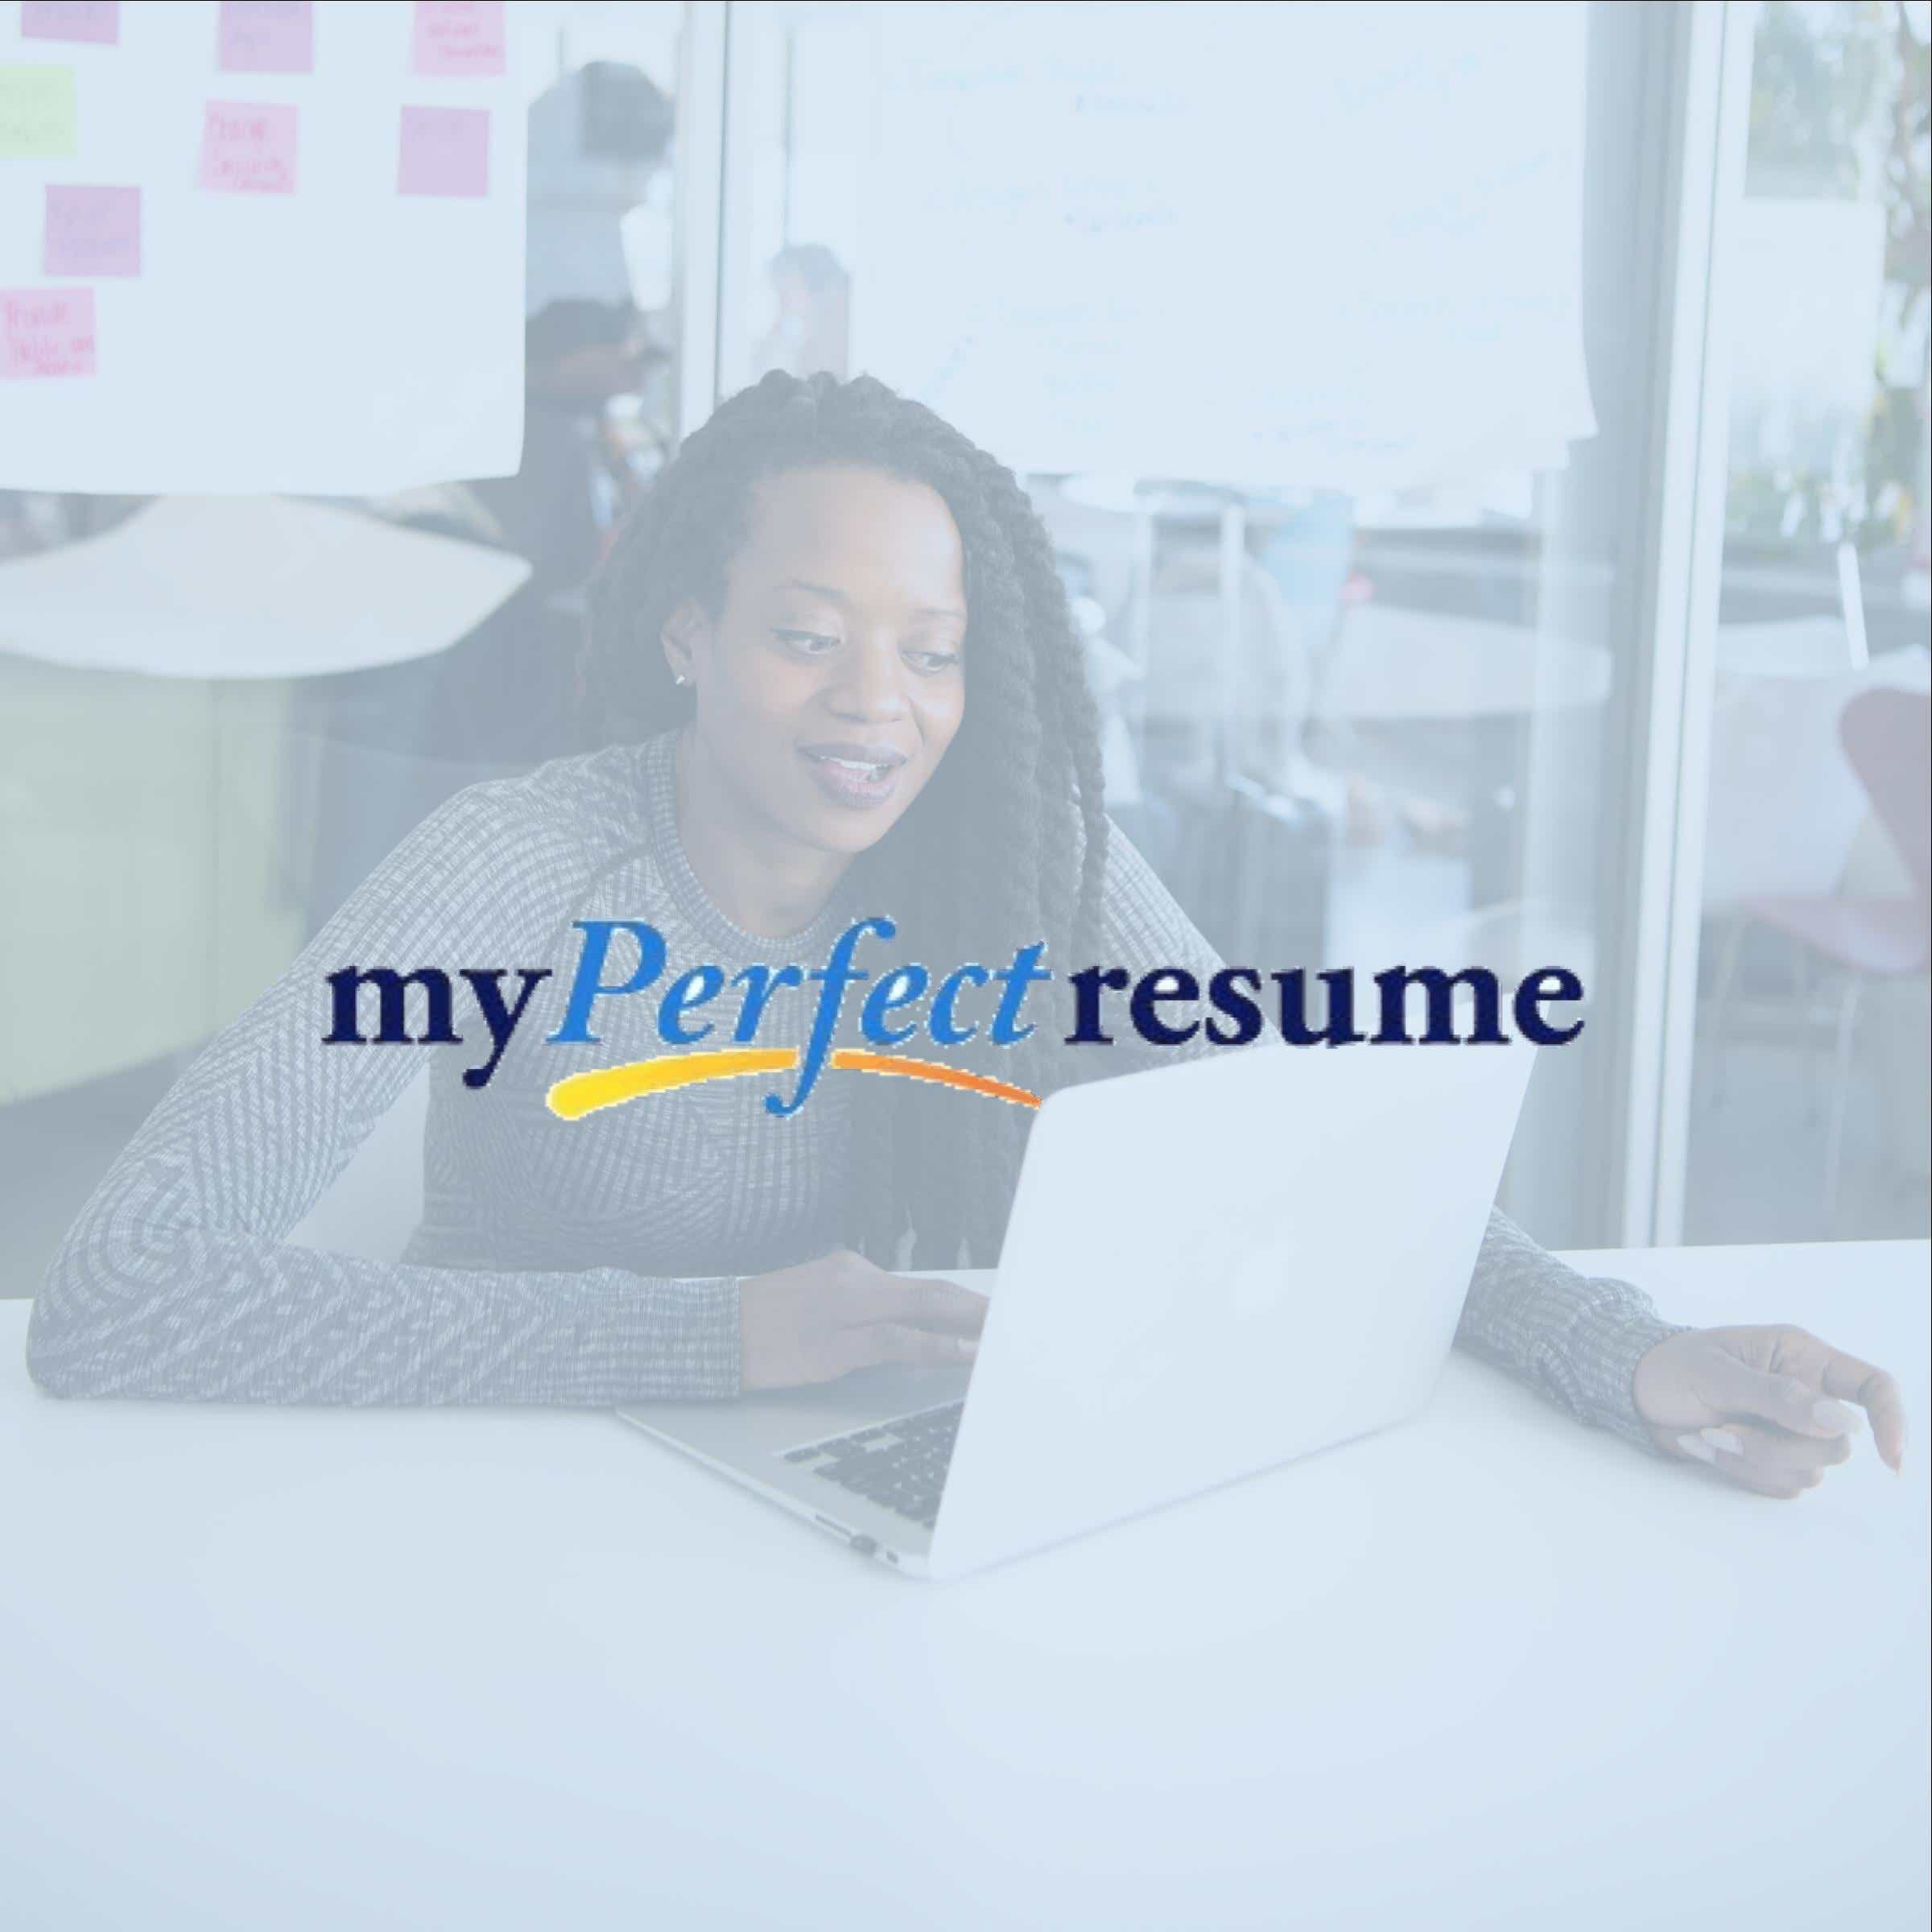 An internet connection can be unpredictable at times, and a sudden drop of the connection while downloading a large file can be frustrating. Myperfectresume